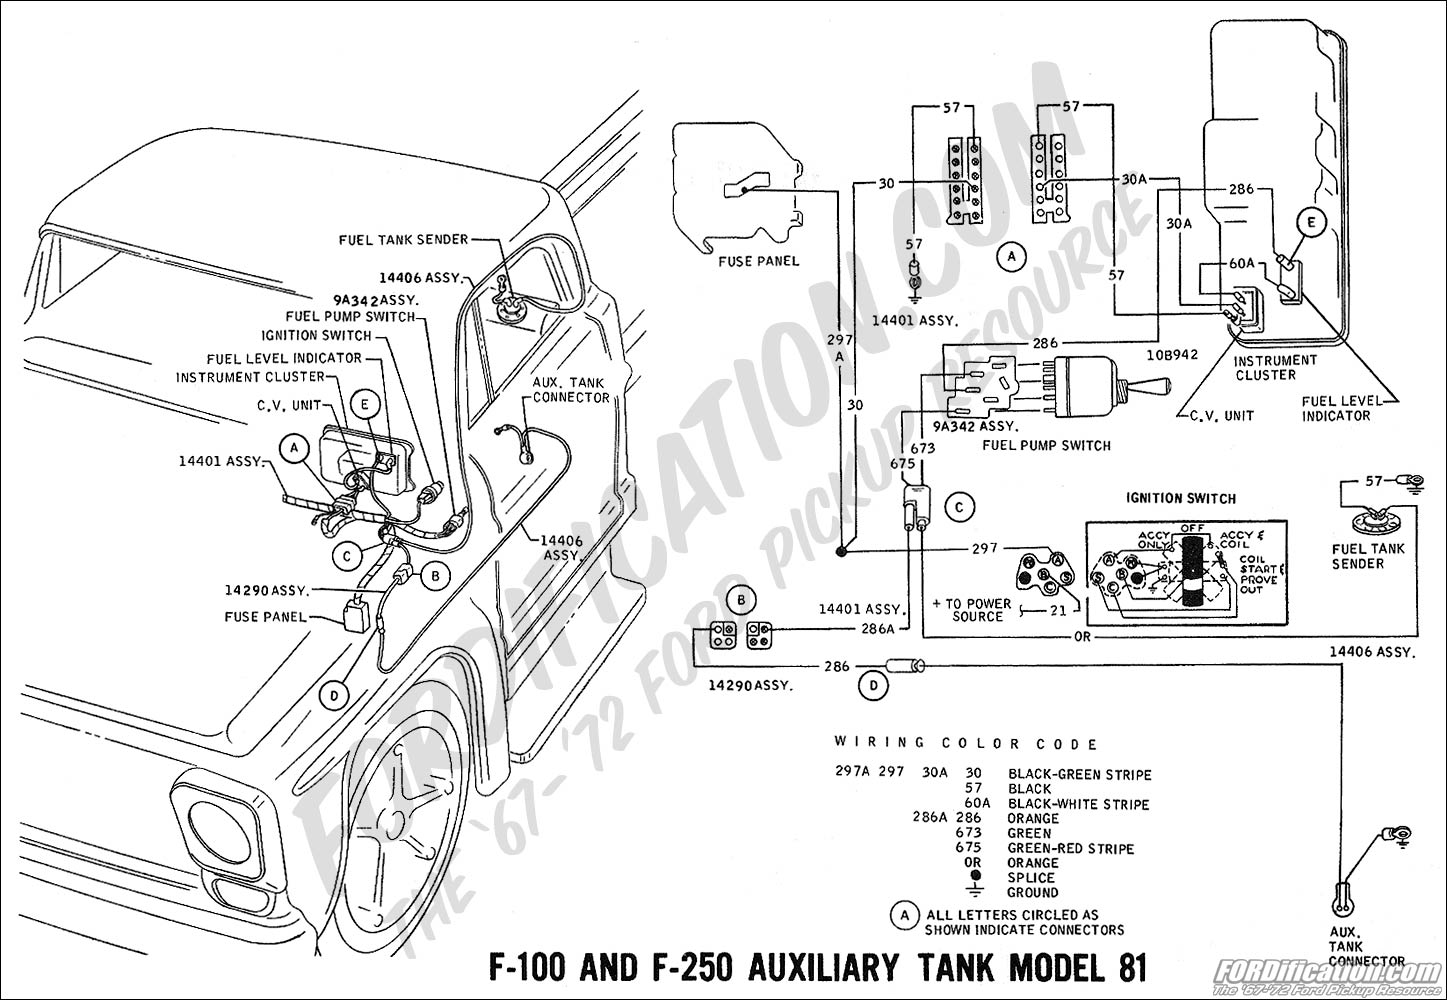 1975 Ford F100 Electrical Diagram Fuel Gauge Wiring Libraries 1969 Pickup Fuse Box Simple Schema1969 Schematic Diagrams 1967